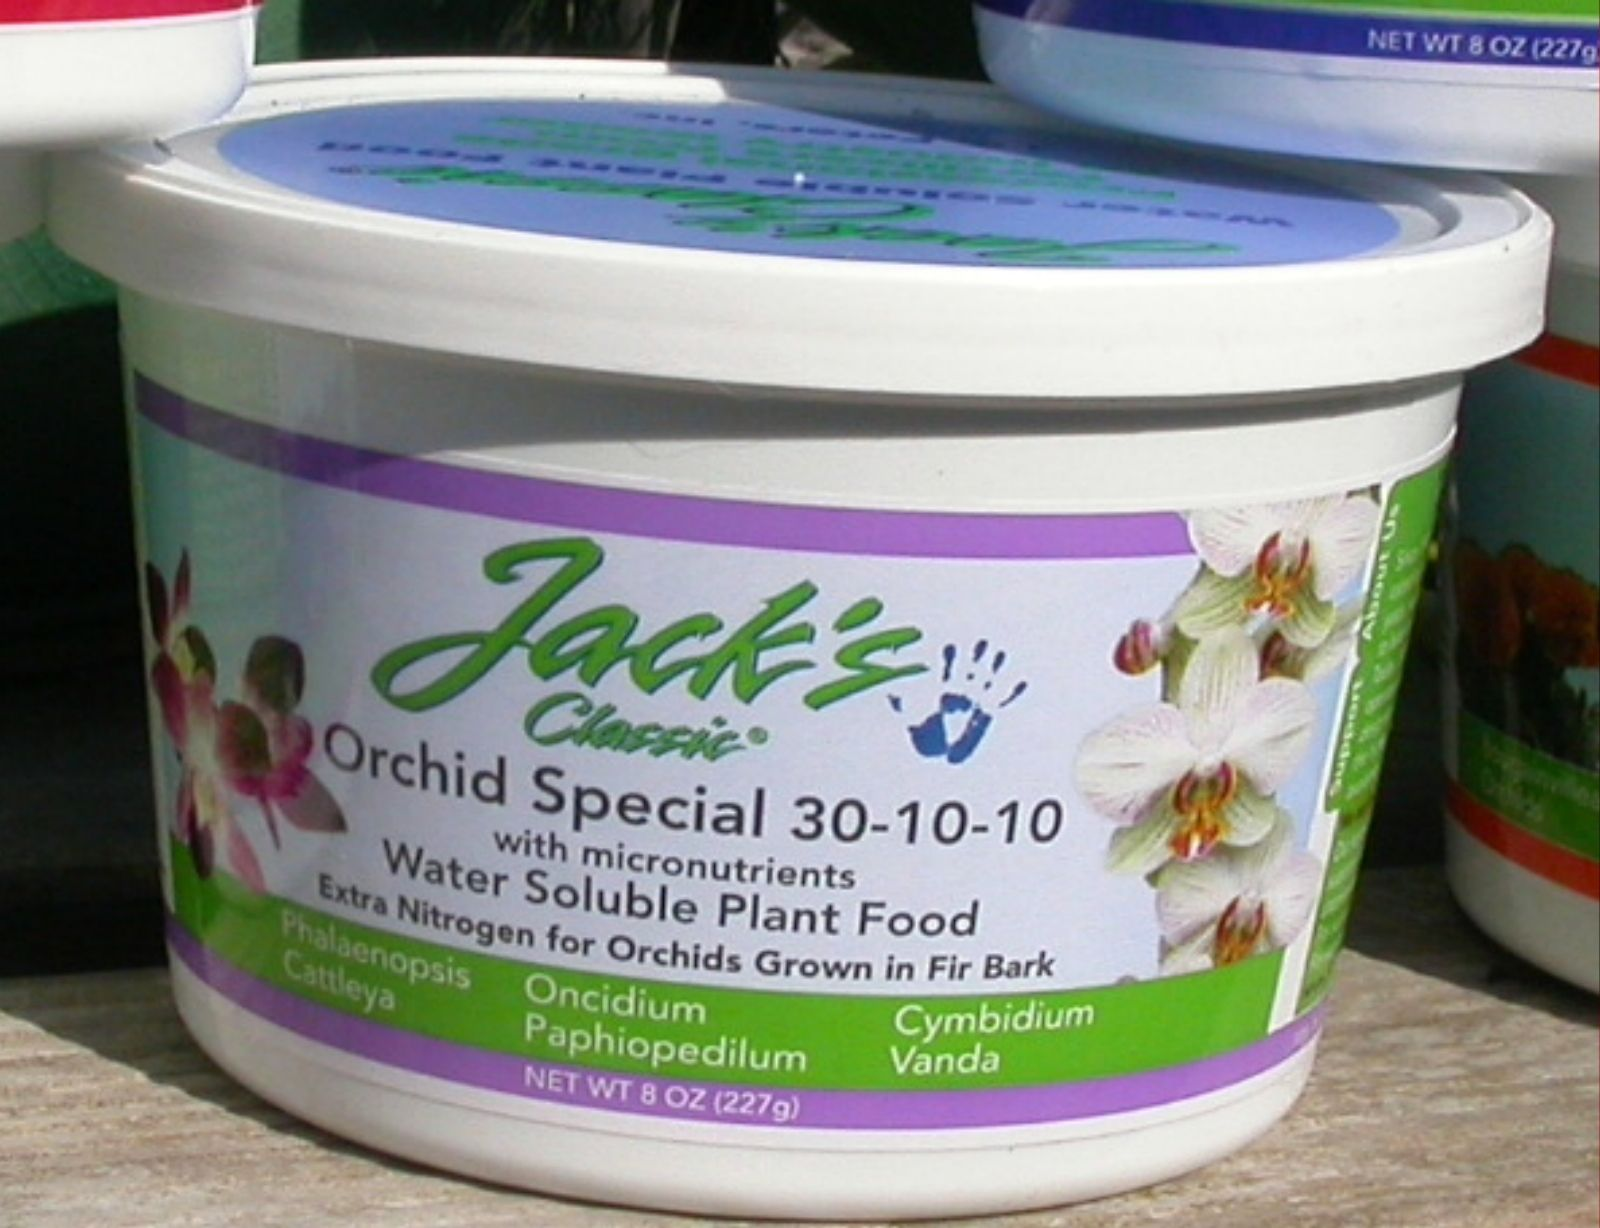 Jack's Classic Orchid Special Fertilizer 30-10-10 with Micronutrients. Especially formulated for orchids grown in fir bark.   - 8 oz.    30-10-10   $8.95 ea.